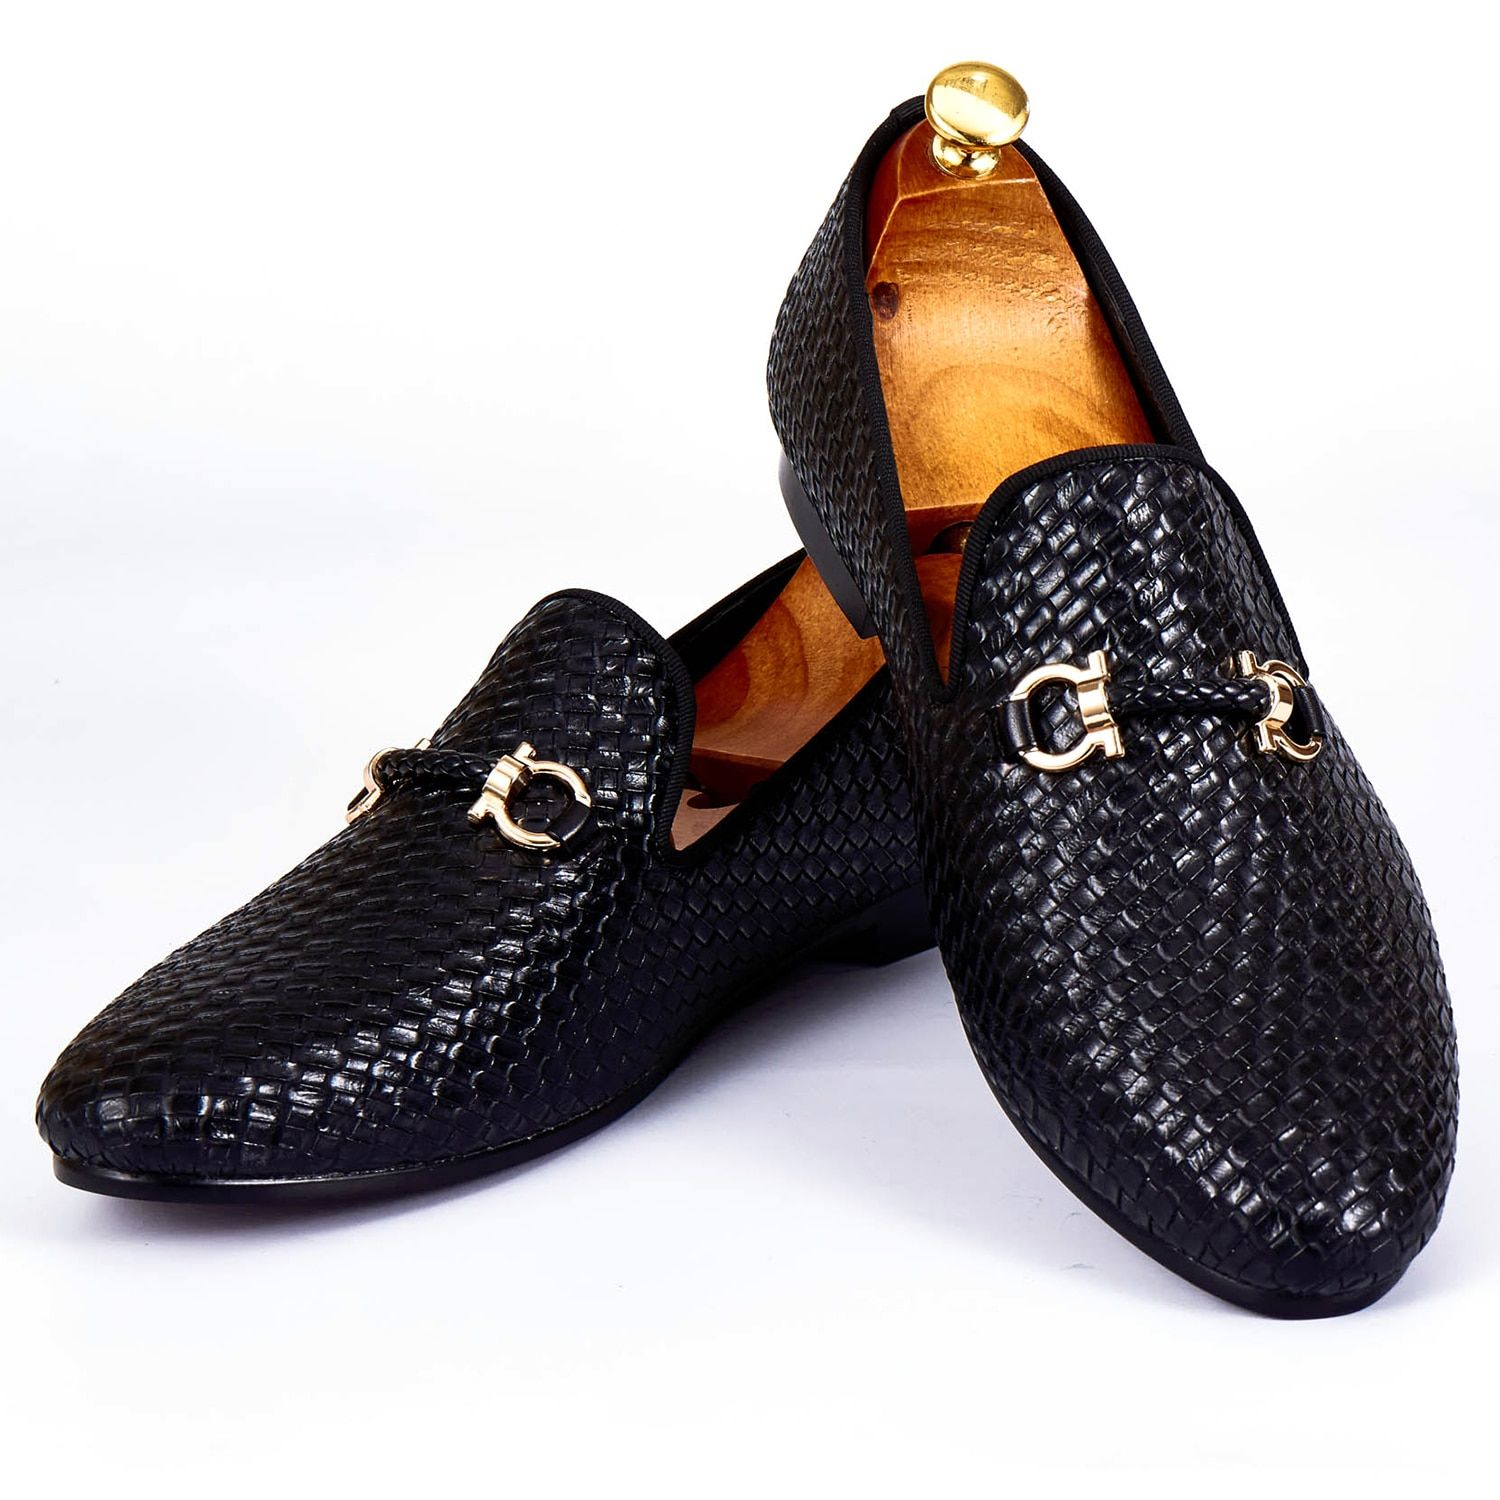 Harpelunde Men Dress Shoes Woven Leather Black Wedding Shoes Buckle <font><b>Strap</b></font> Flats Size 7-14